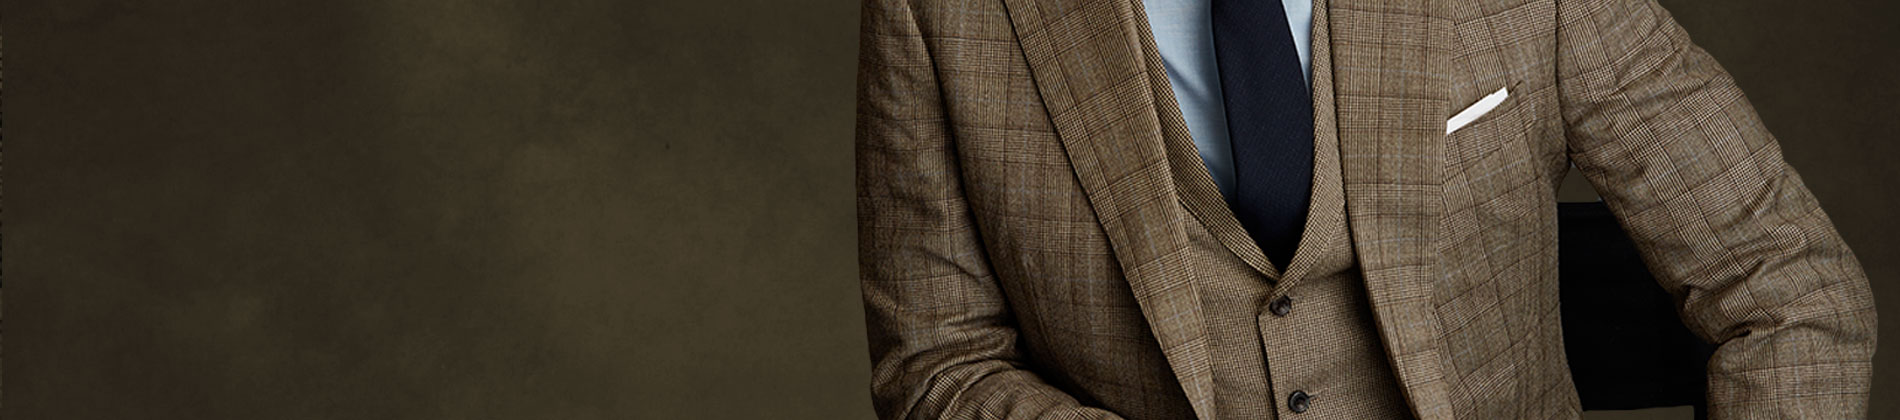 Carlo Barbera suiting fabric collection woven in Italy for Gladson